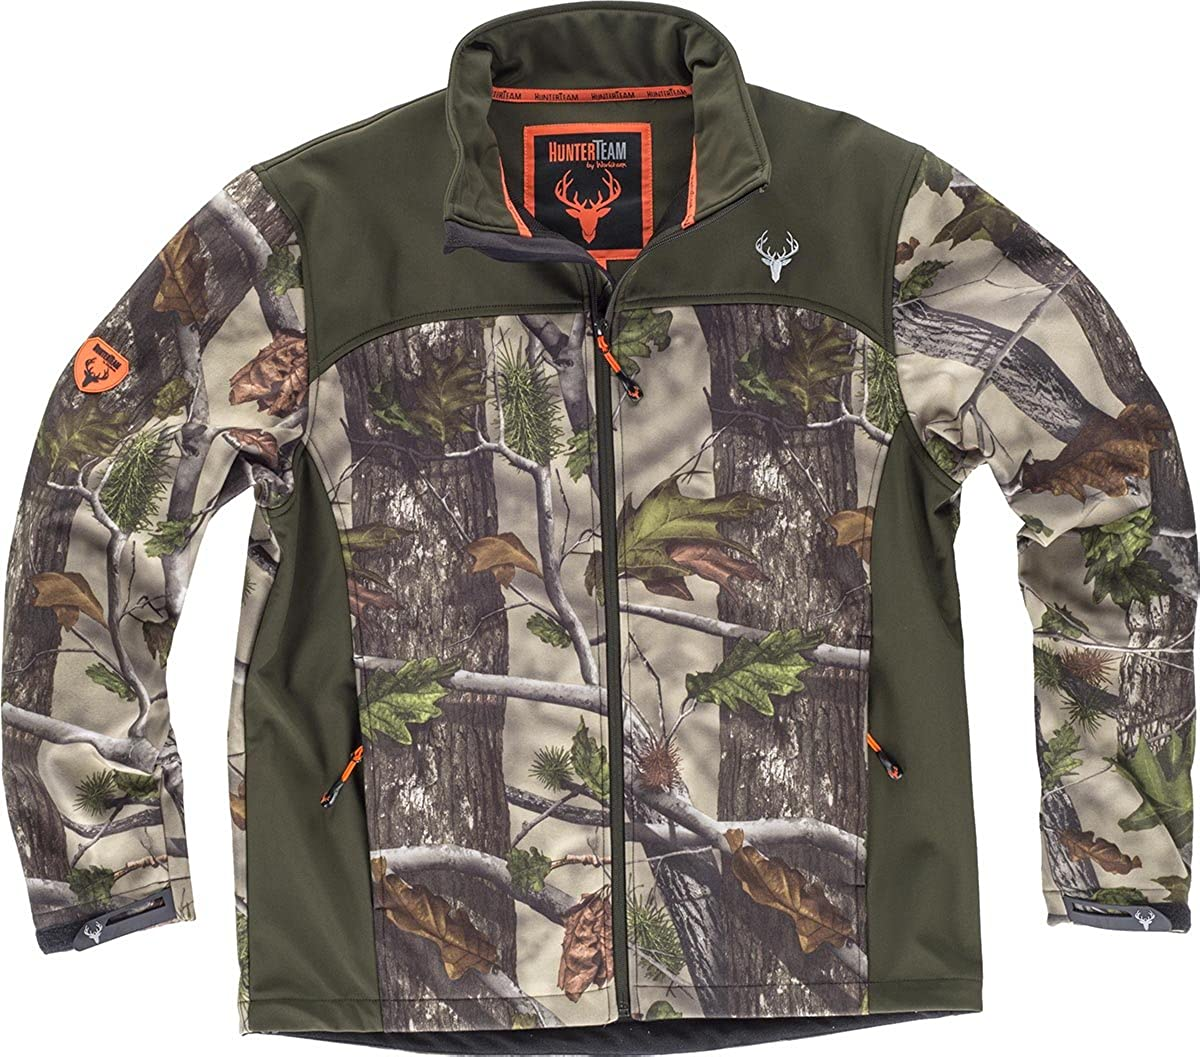 Work Team Chaqueta Caza y Pesca workshell Estampada con ...